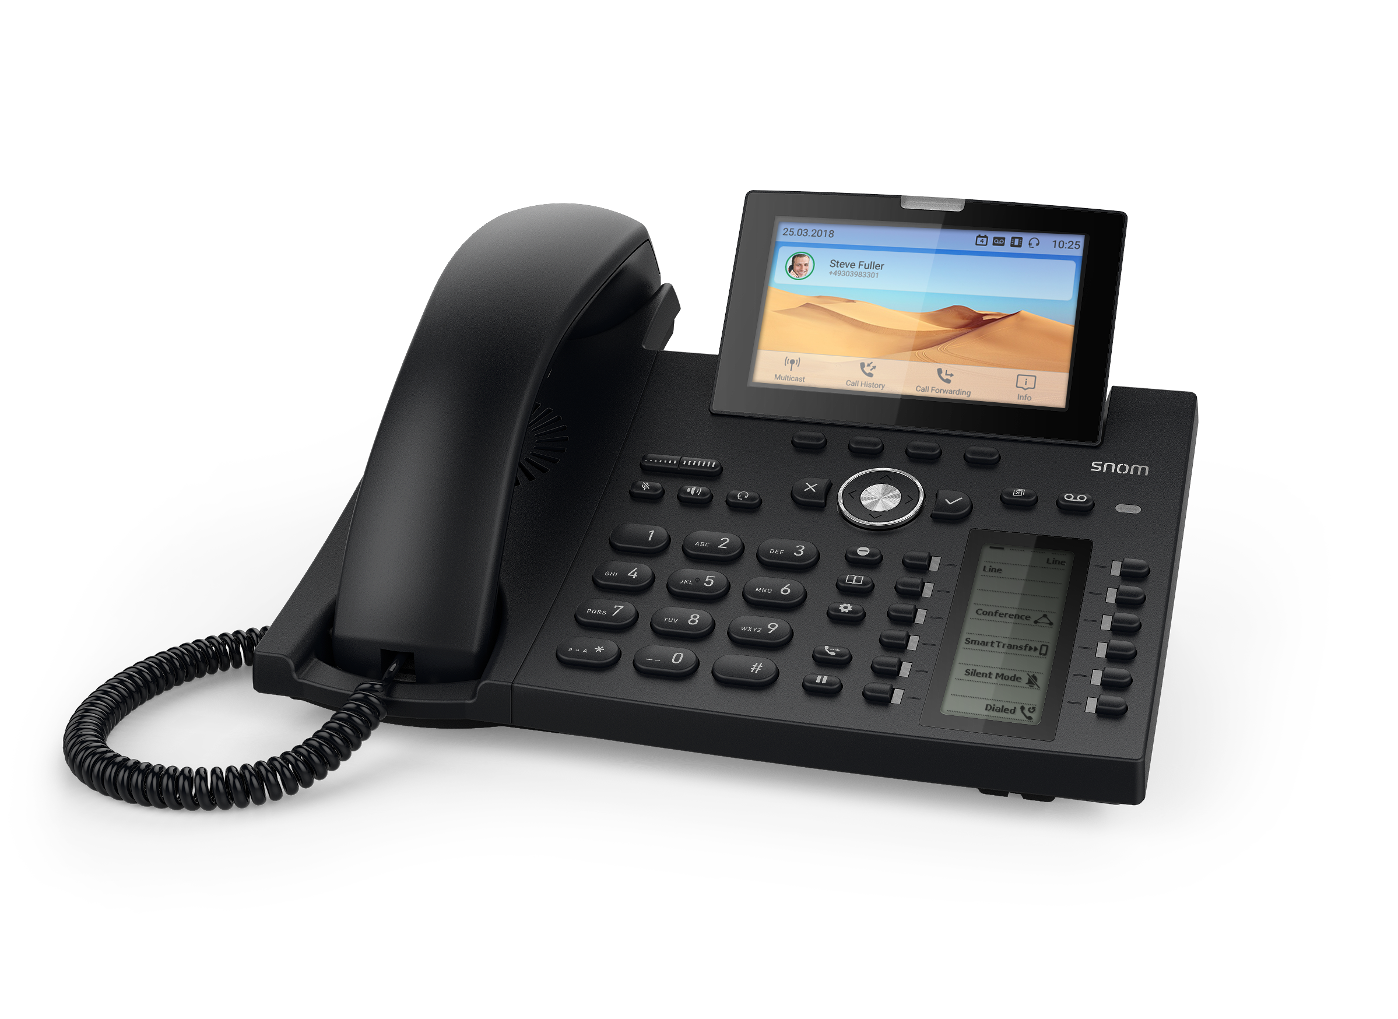 Snom launches a D3xx series flagship model: the D385 business desk phone